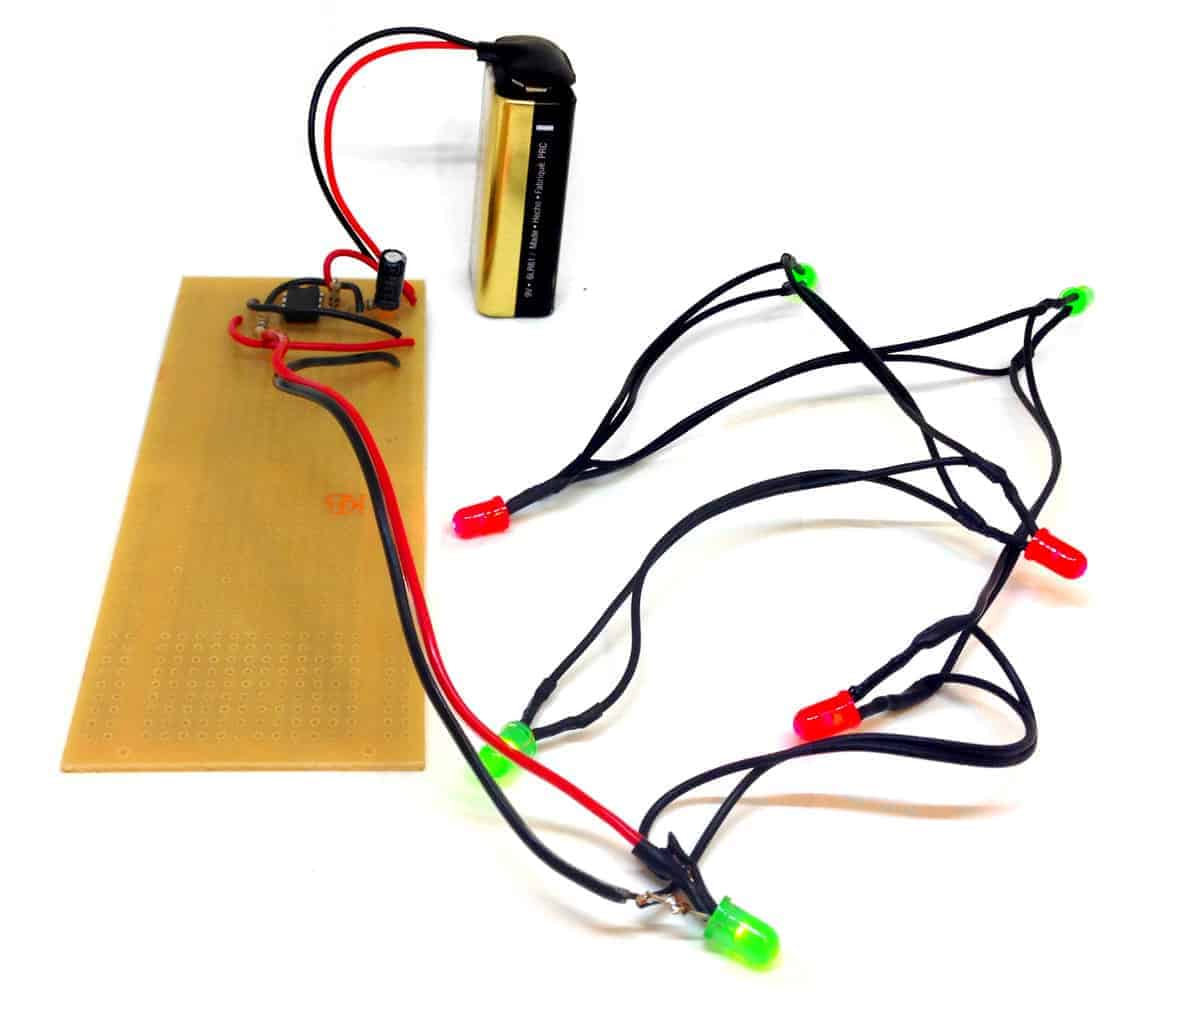 Blinking Christmas Lights Build Electronic Circuits Capacitors And Resistors A Circuitbreadboard Wires Batteries Circuit